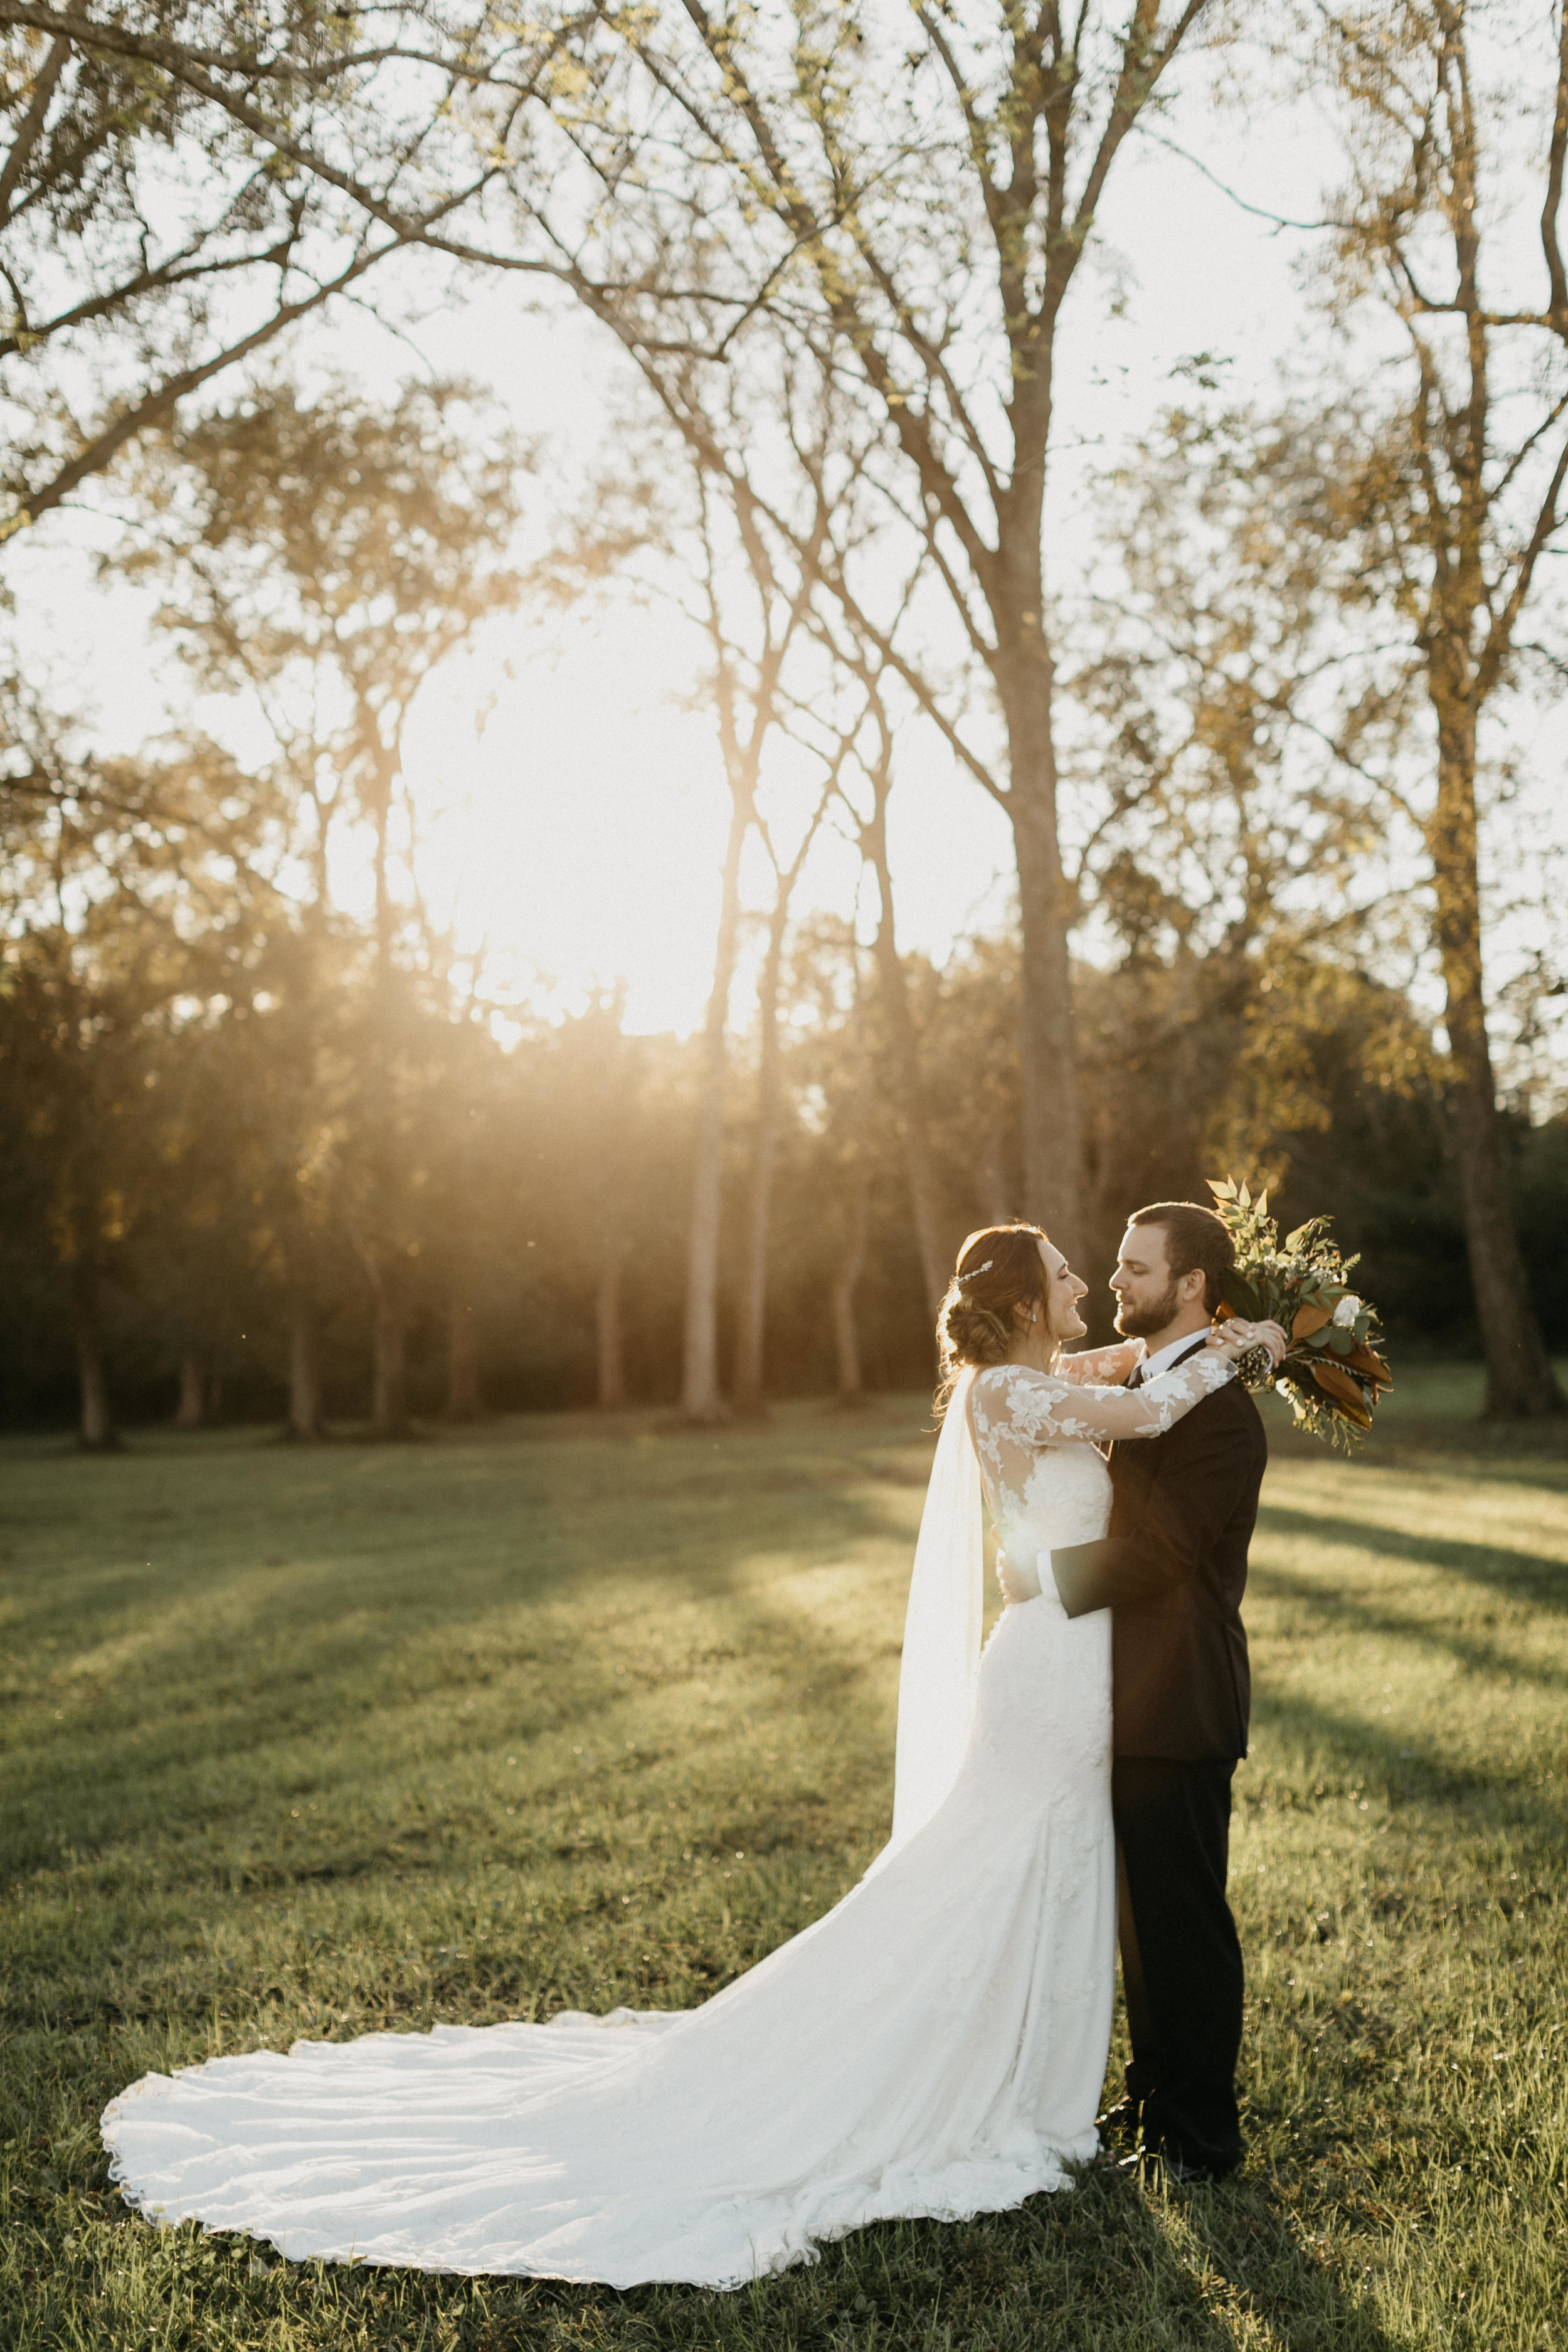 """Logan + David - """"The flowers were everything I dreamed of and more! My bridal bouquet was honestly not what I expected…it was FAR BETTER than anything I had imagined!"""""""